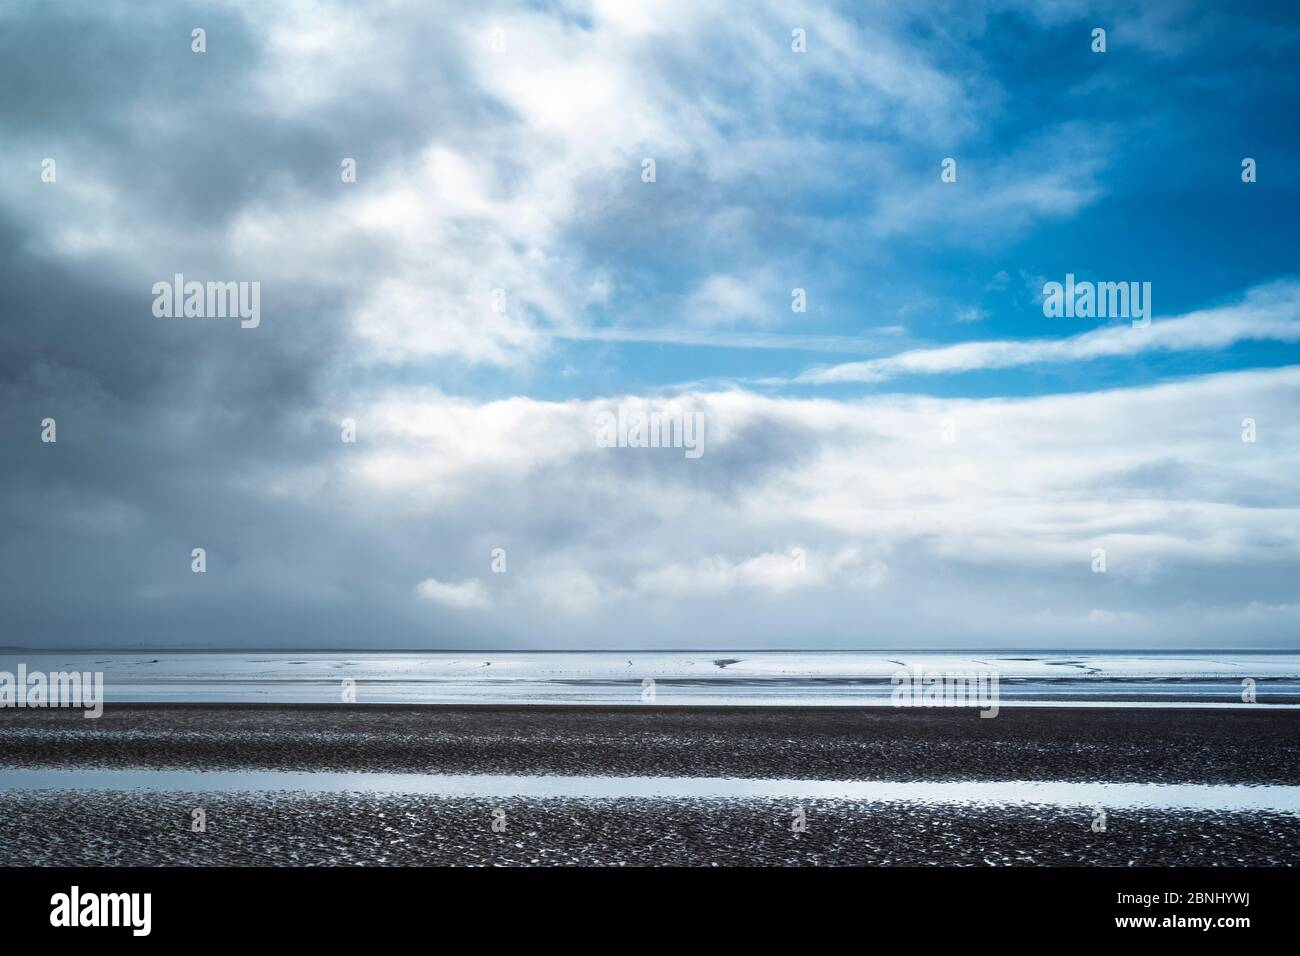 Pastel shades of sea and sandy beach of the Bristol Channel at Burnham-on-Sea sea shore, Somerset, UK Stock Photo